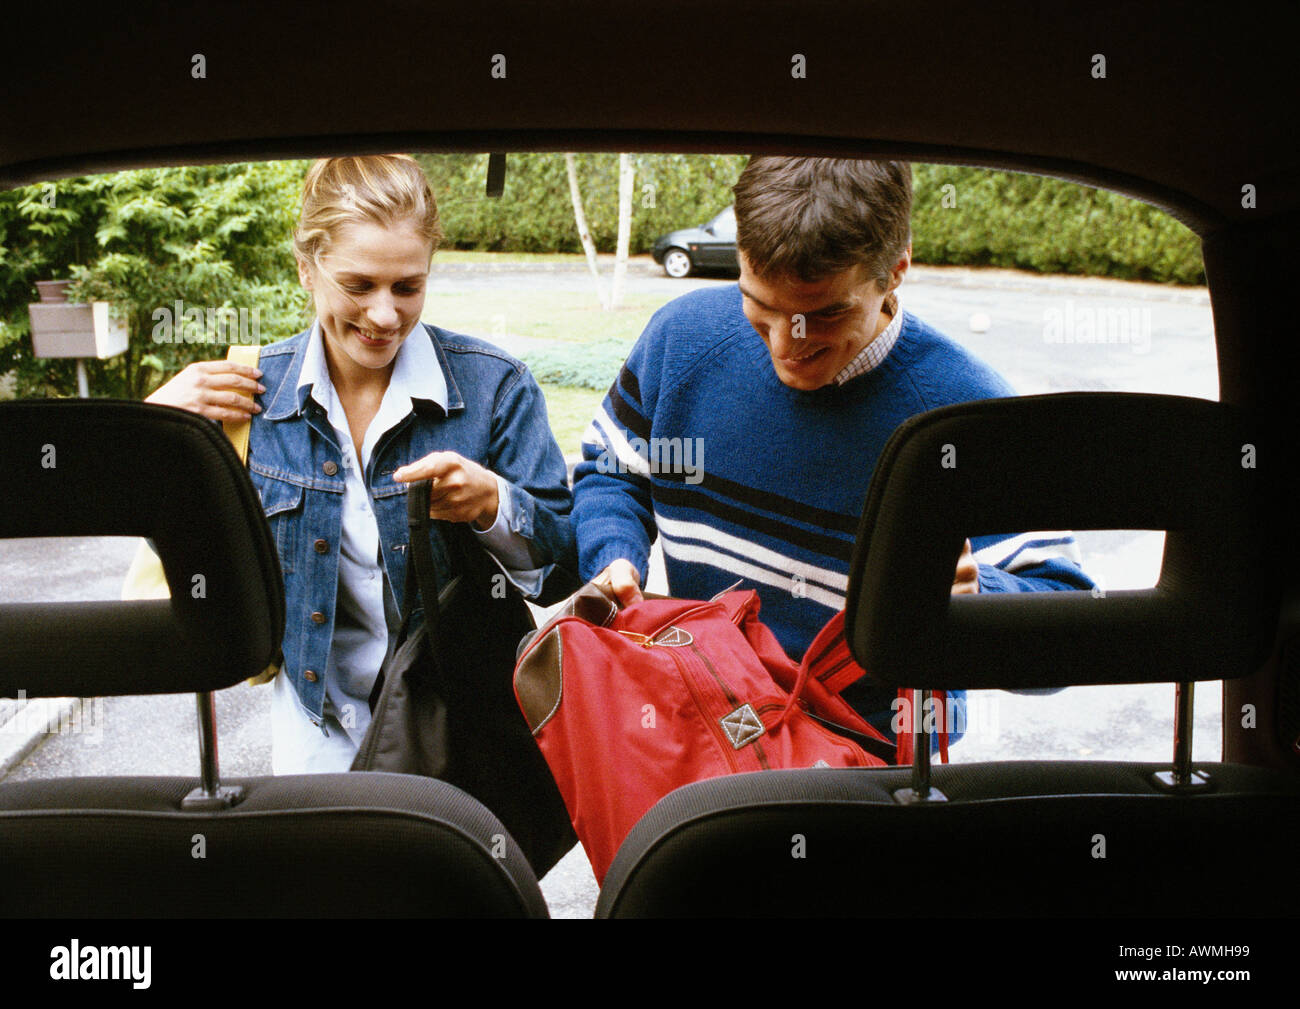 Man and woman putting bags in trunk of car, car headrests in foreground - Stock Image